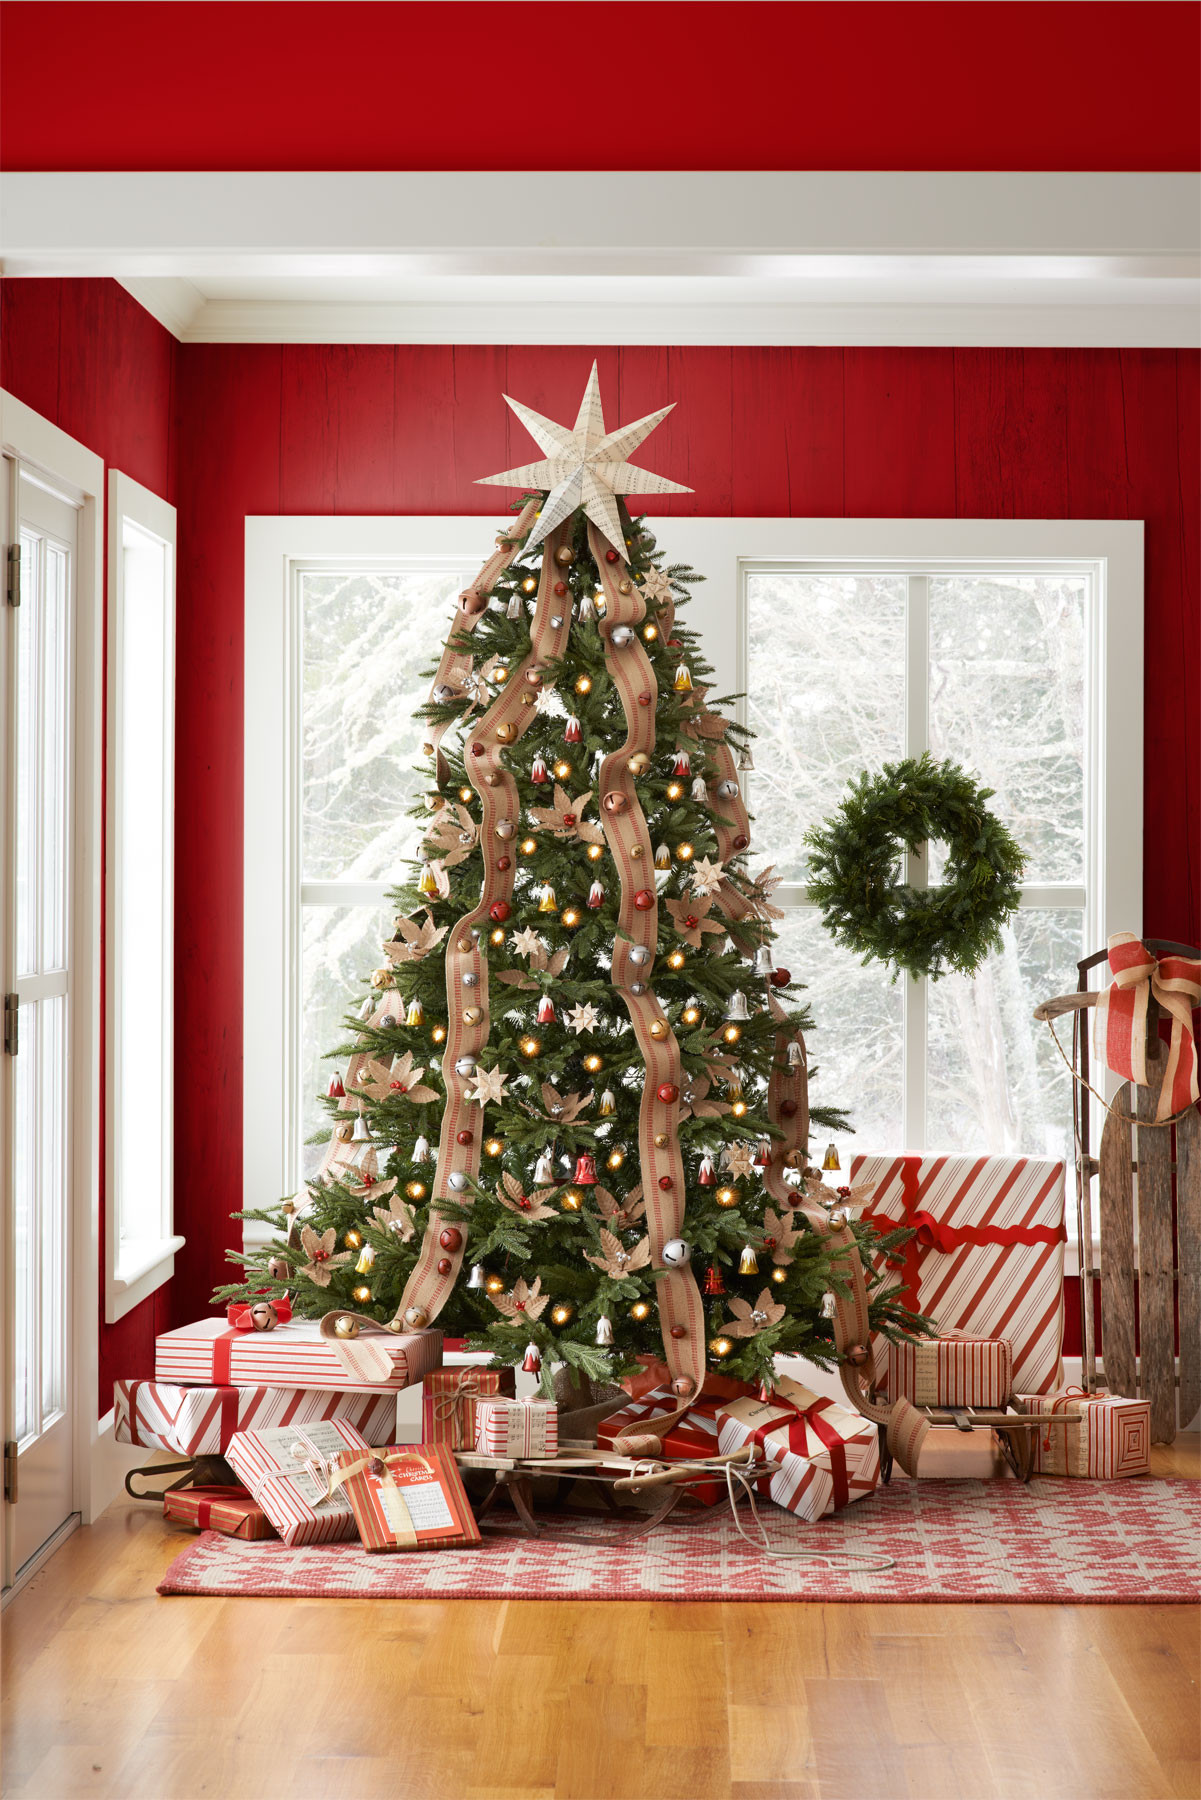 Christmas Tree Decorations Awesome 30 Best Decorated Christmas Trees 2017 Of Superb 49 Pics Christmas Tree Decorations